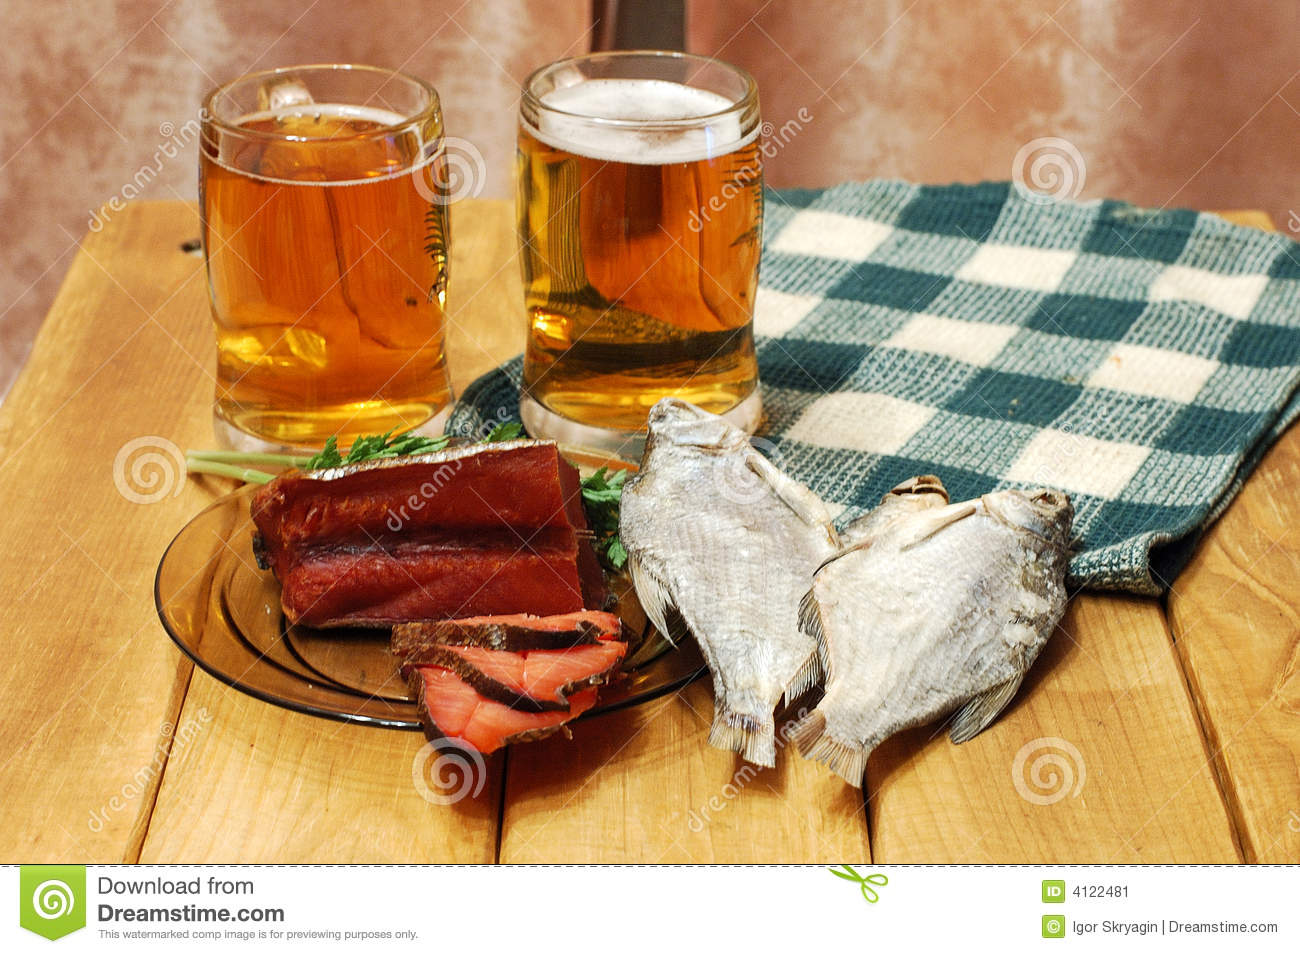 Beer and fish on table stock image image 4122481 for Fish and beer